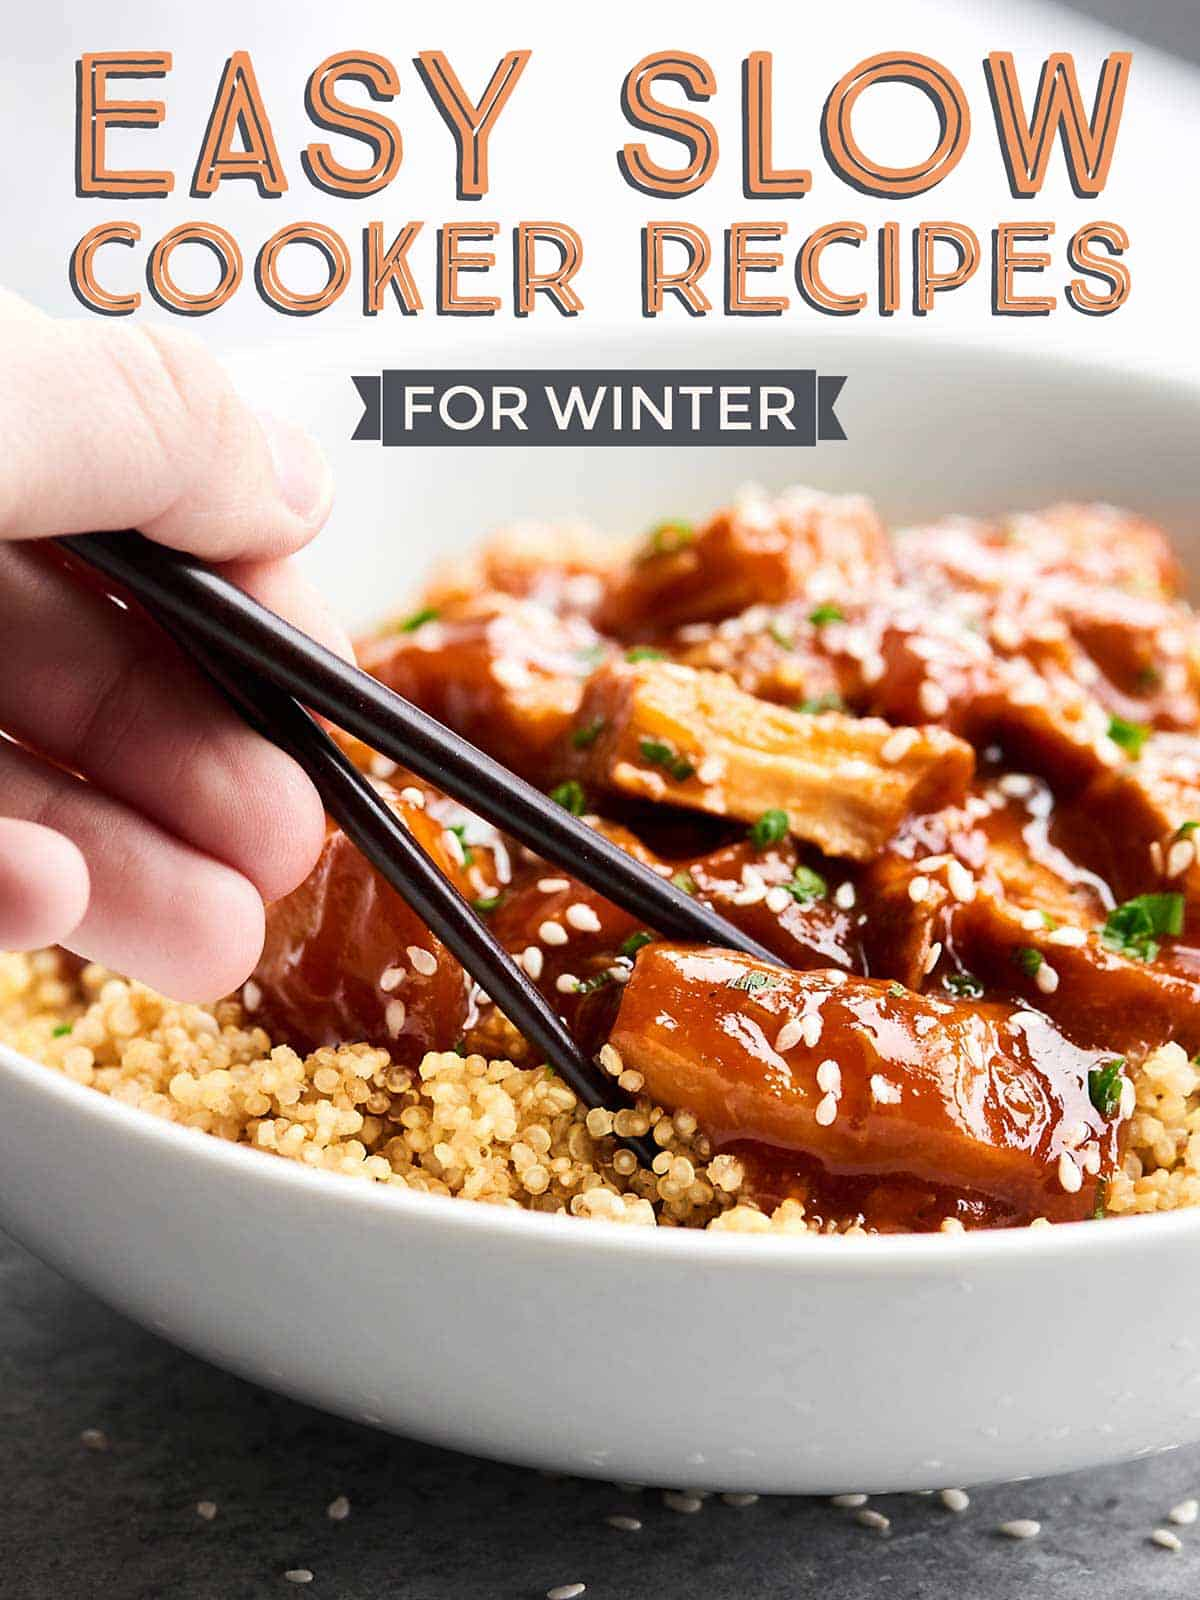 With winter weather in full swing, it's peak season for comfort food. These healthy slow-cooker recipes are packed with bold flavors and nutrient-dense ingredients to satisfy the whole family.